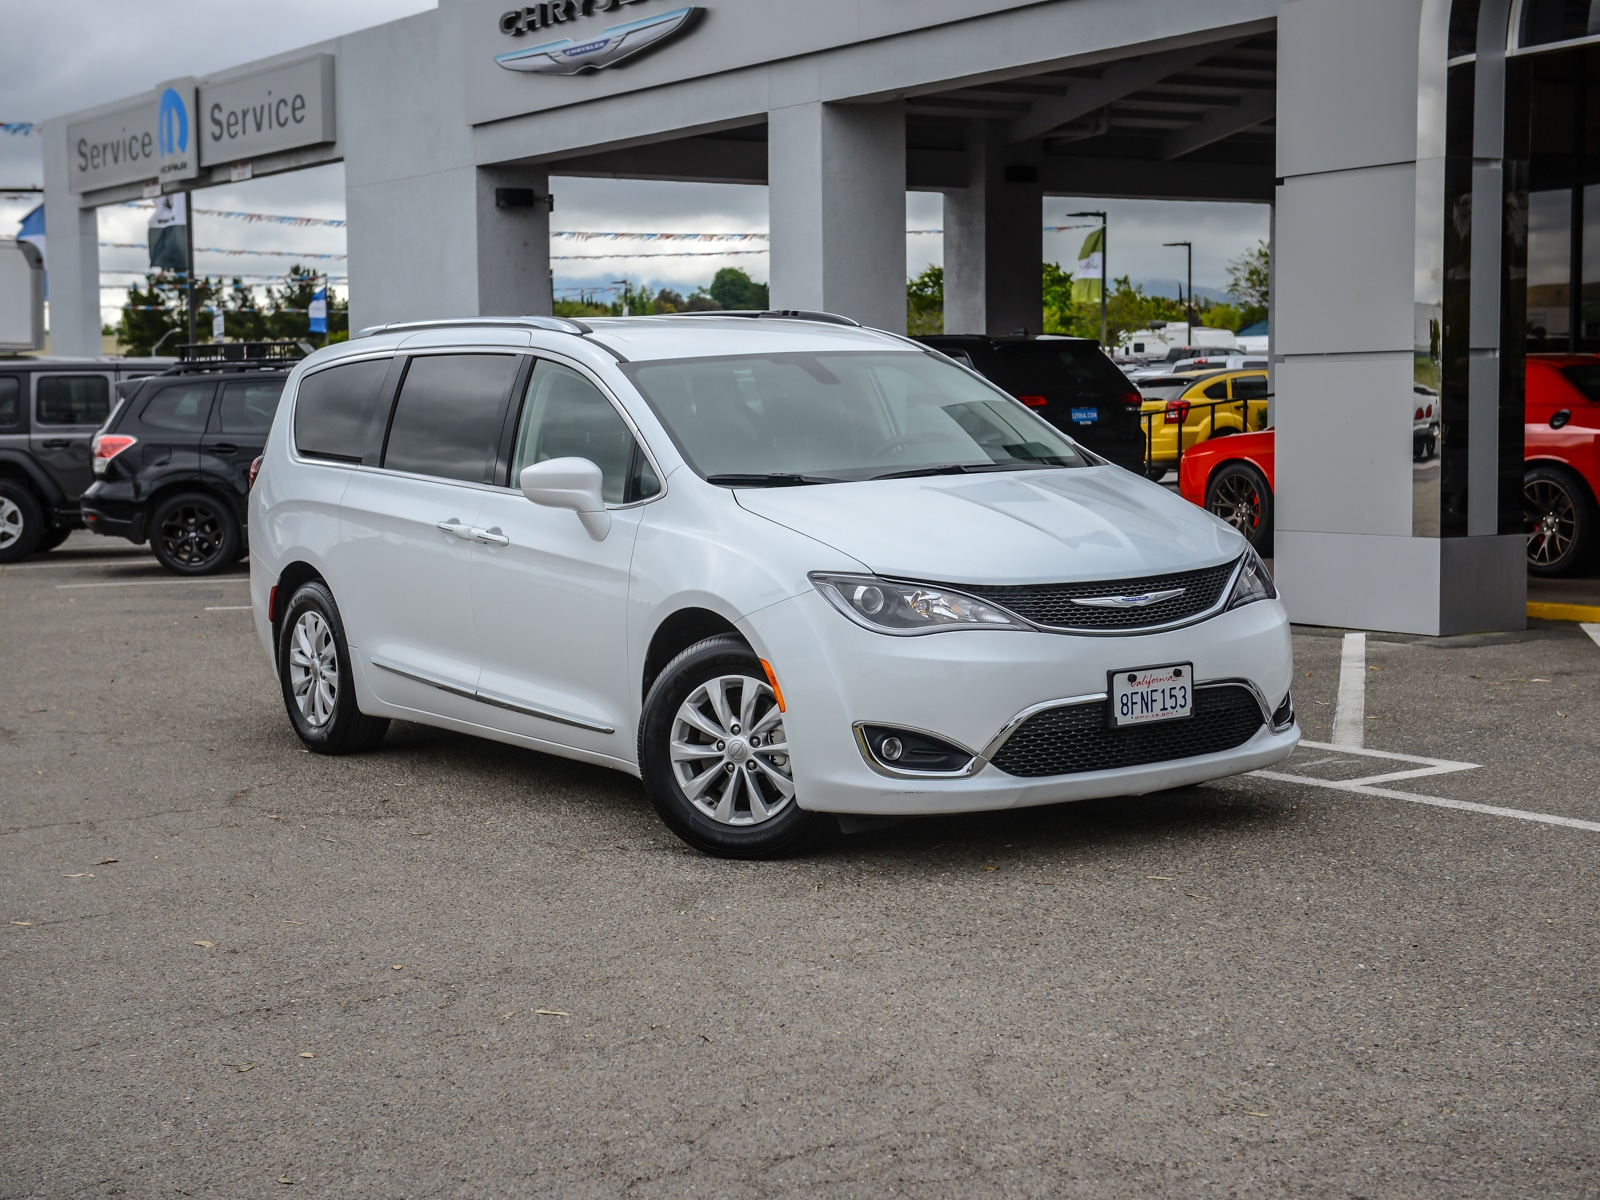 2019 Chrysler Pacifica Mini-van, Passenger